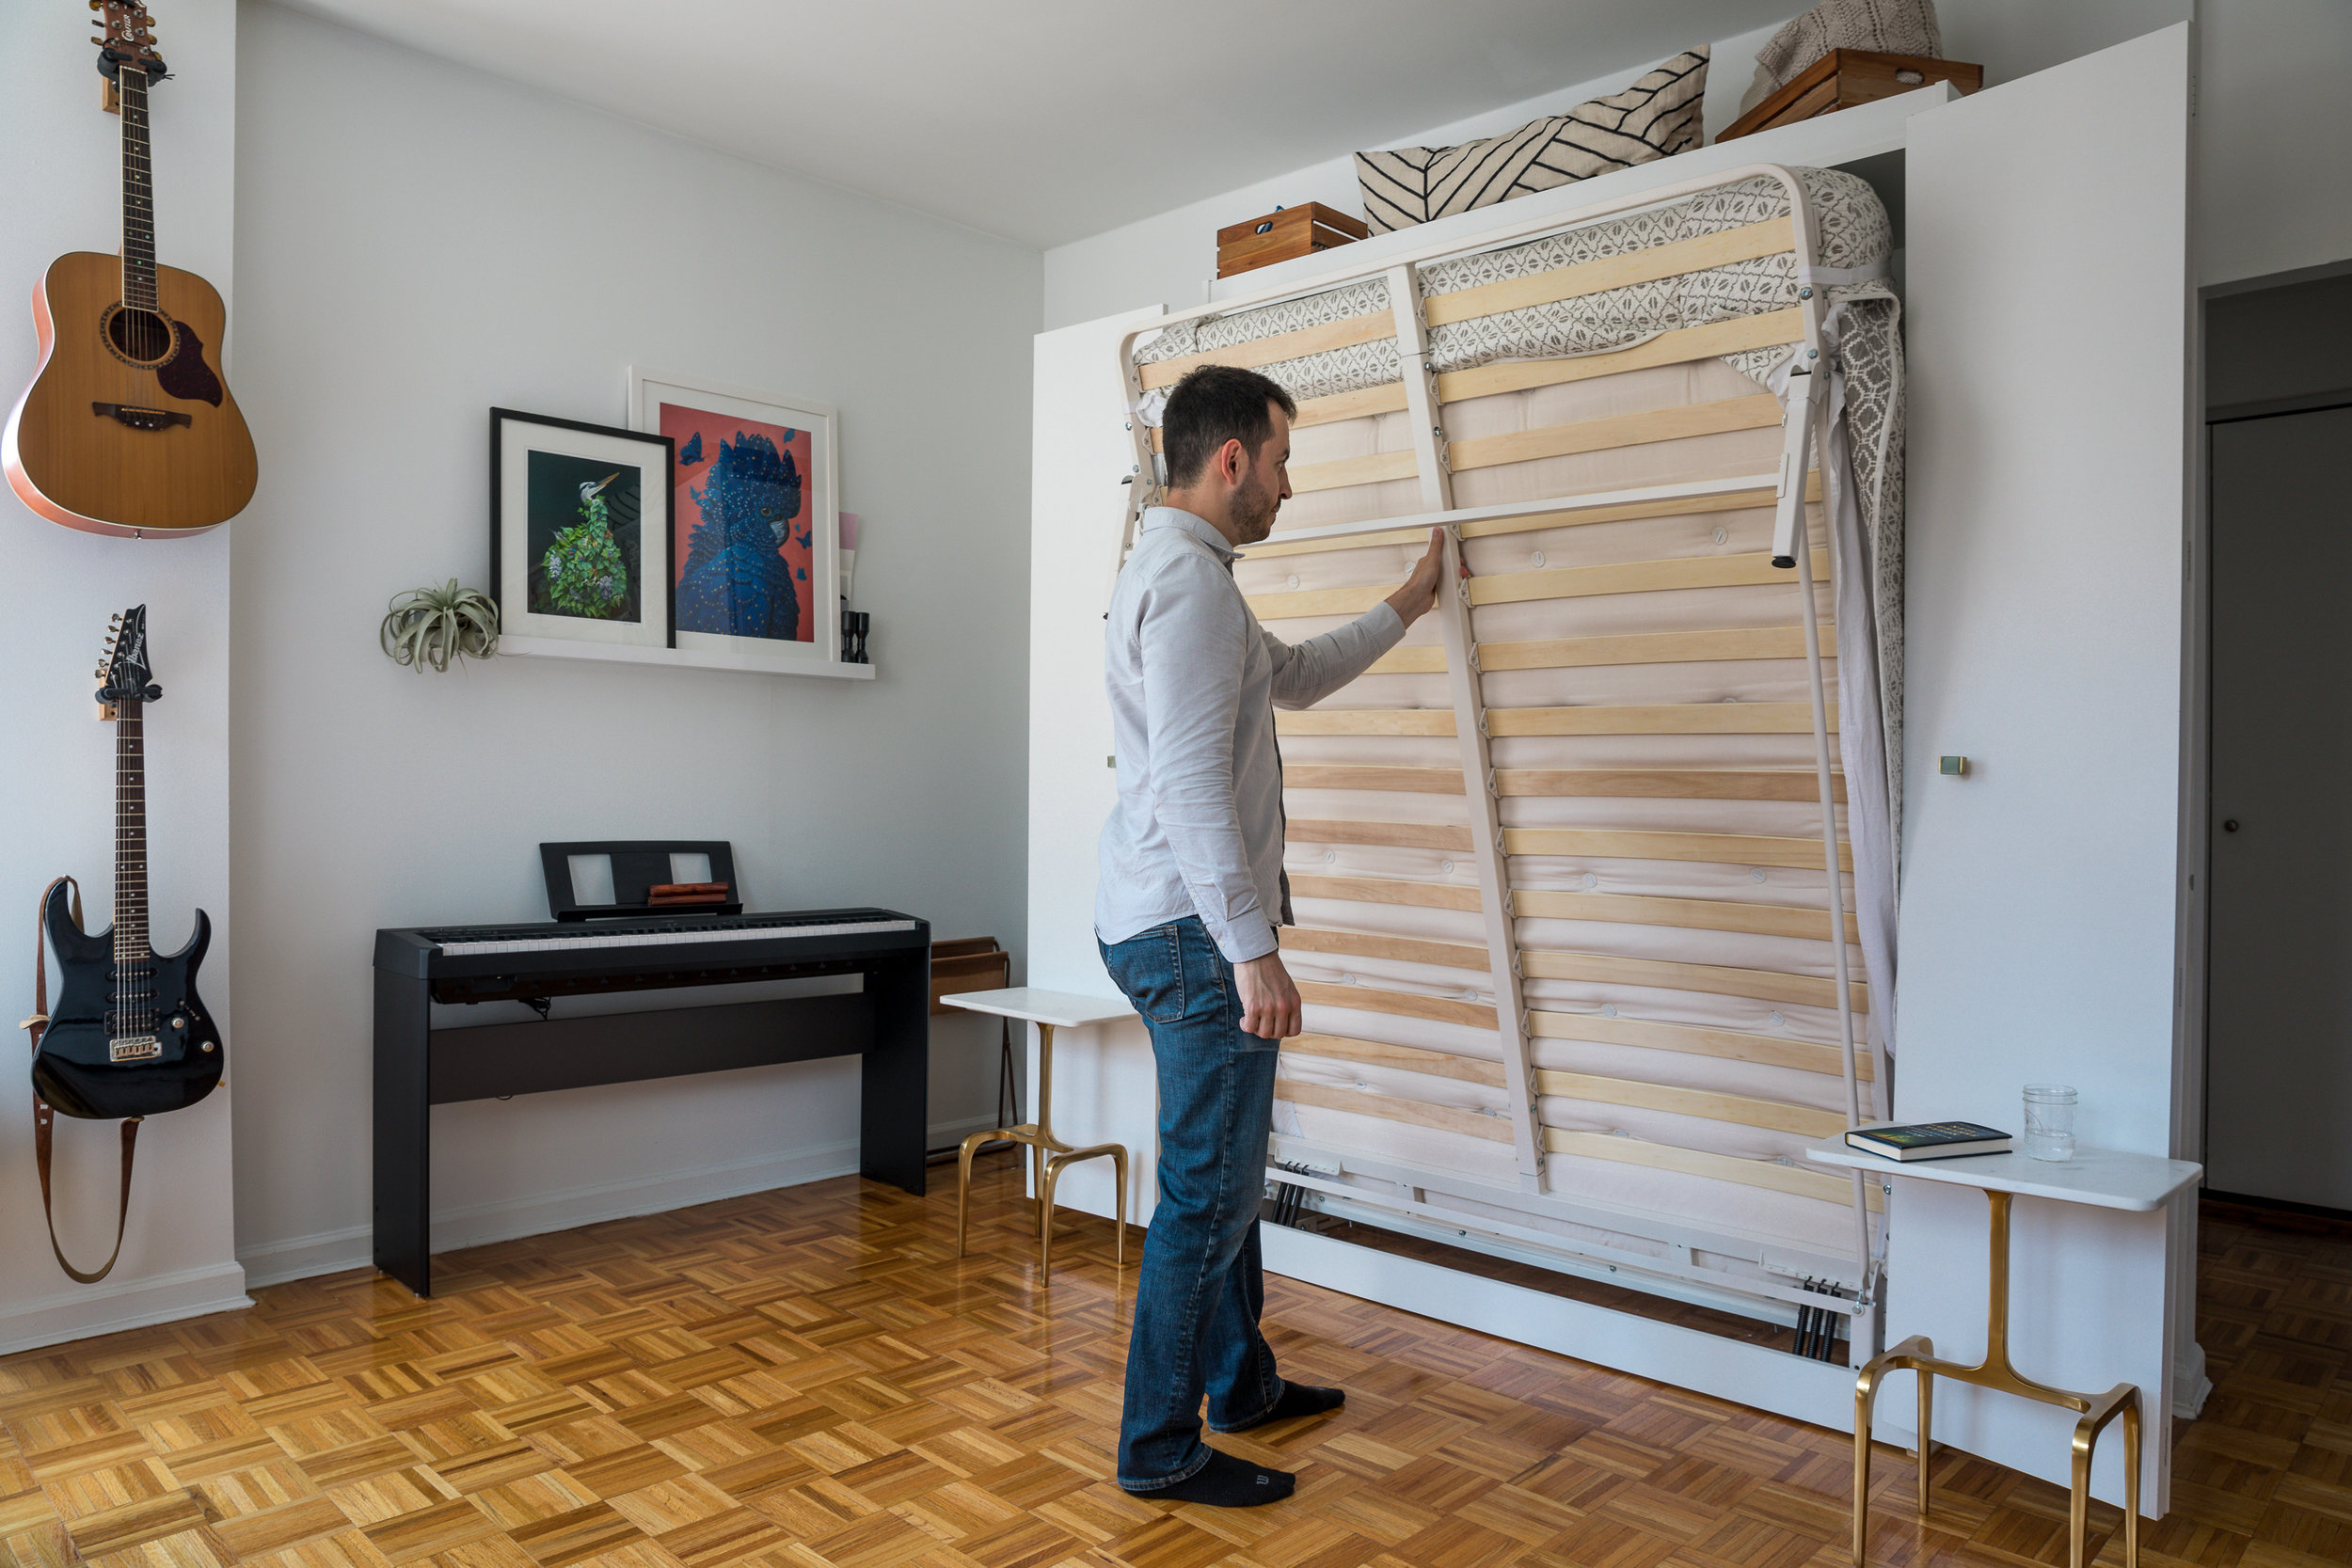 Wall Bed / Murphy Bed - putting it up